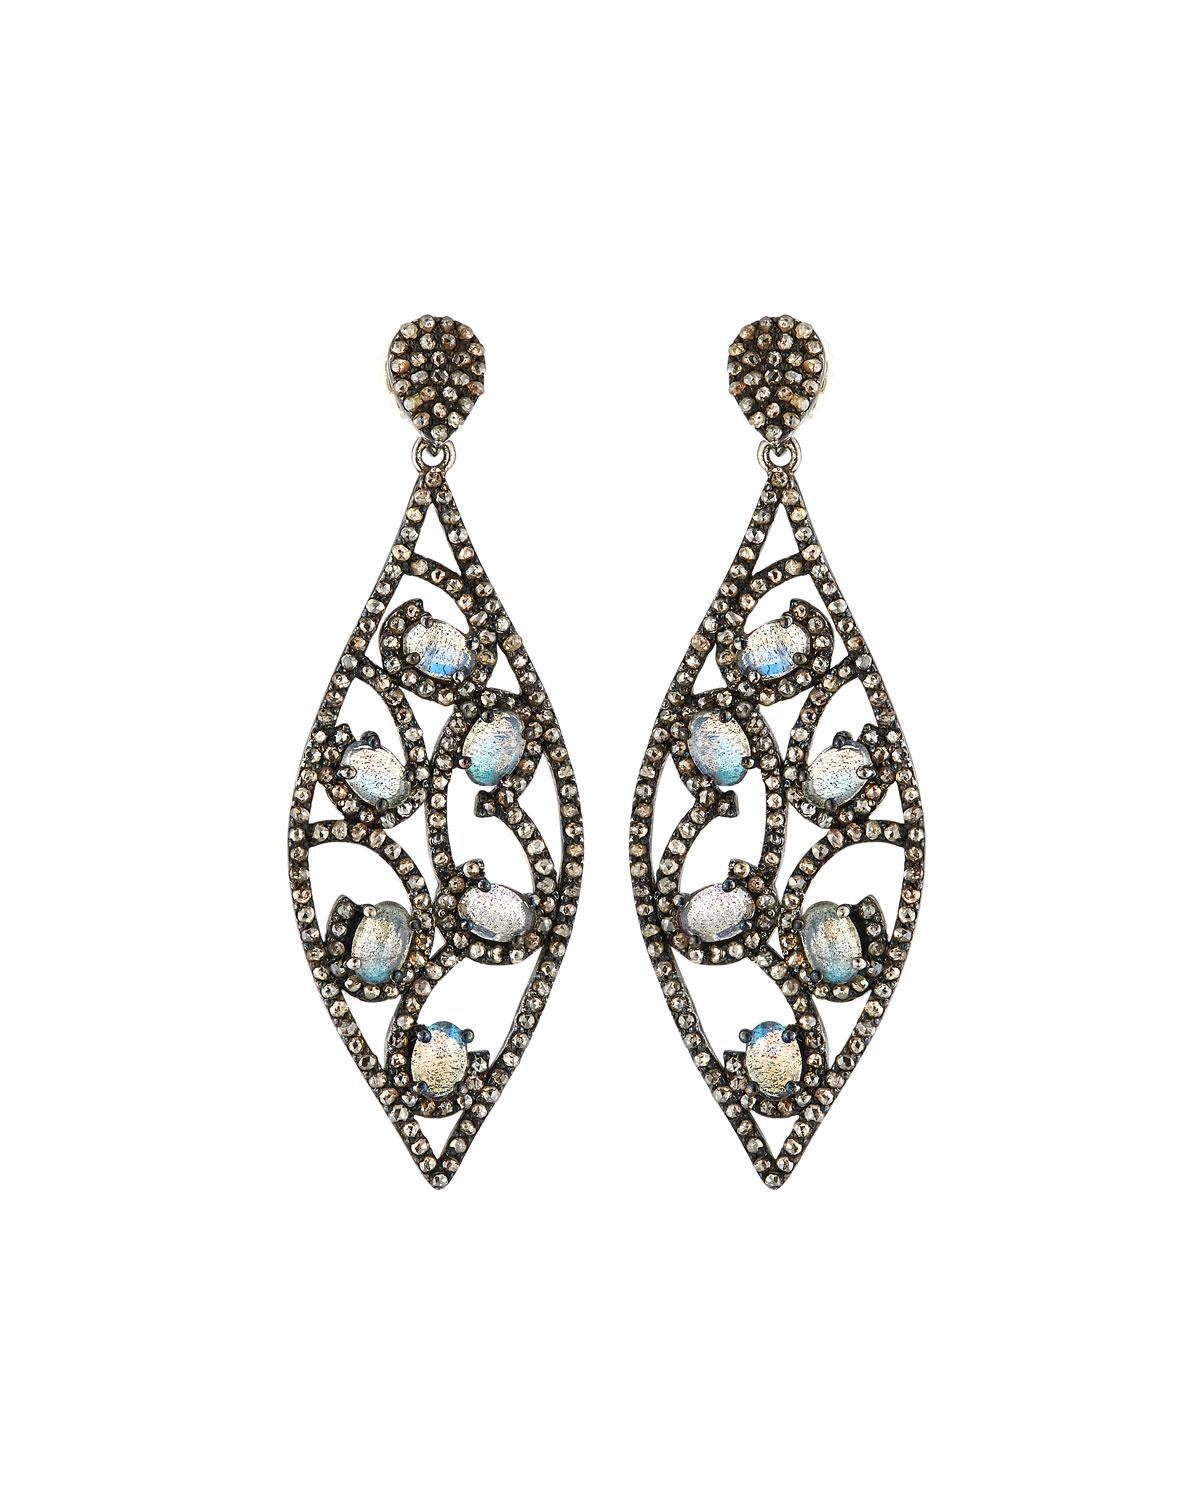 Bavna Black Diamond & Moonstone Hoop Drop Earrings za2wwuqmWY